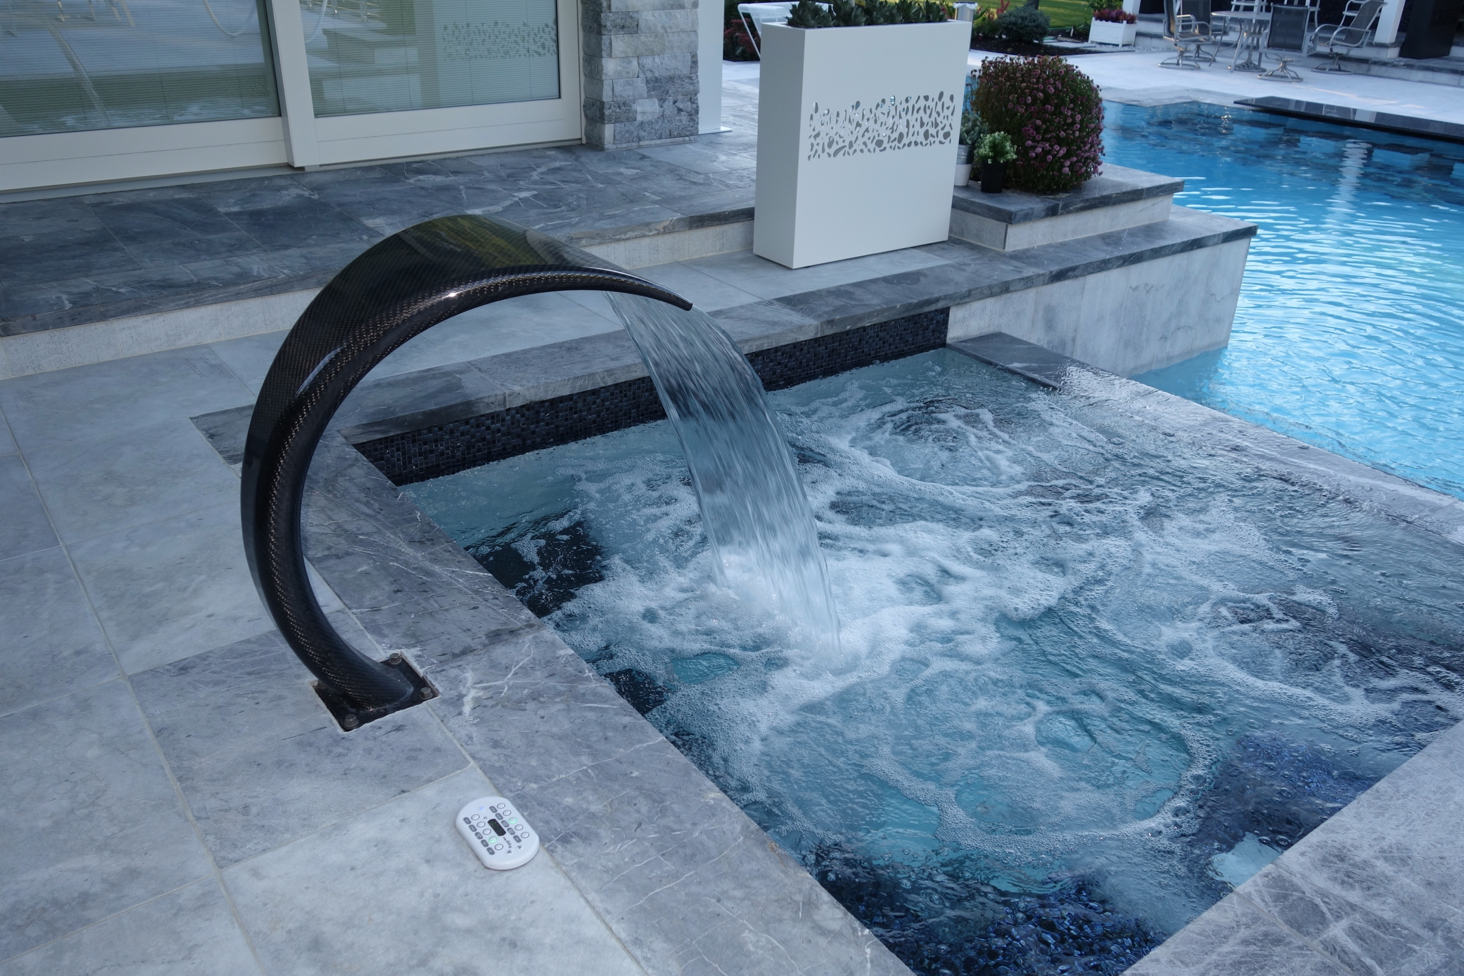 Platinum Group - offering Landscaping in Long island, NY - integrates wellness features into their gunite pools and spas.